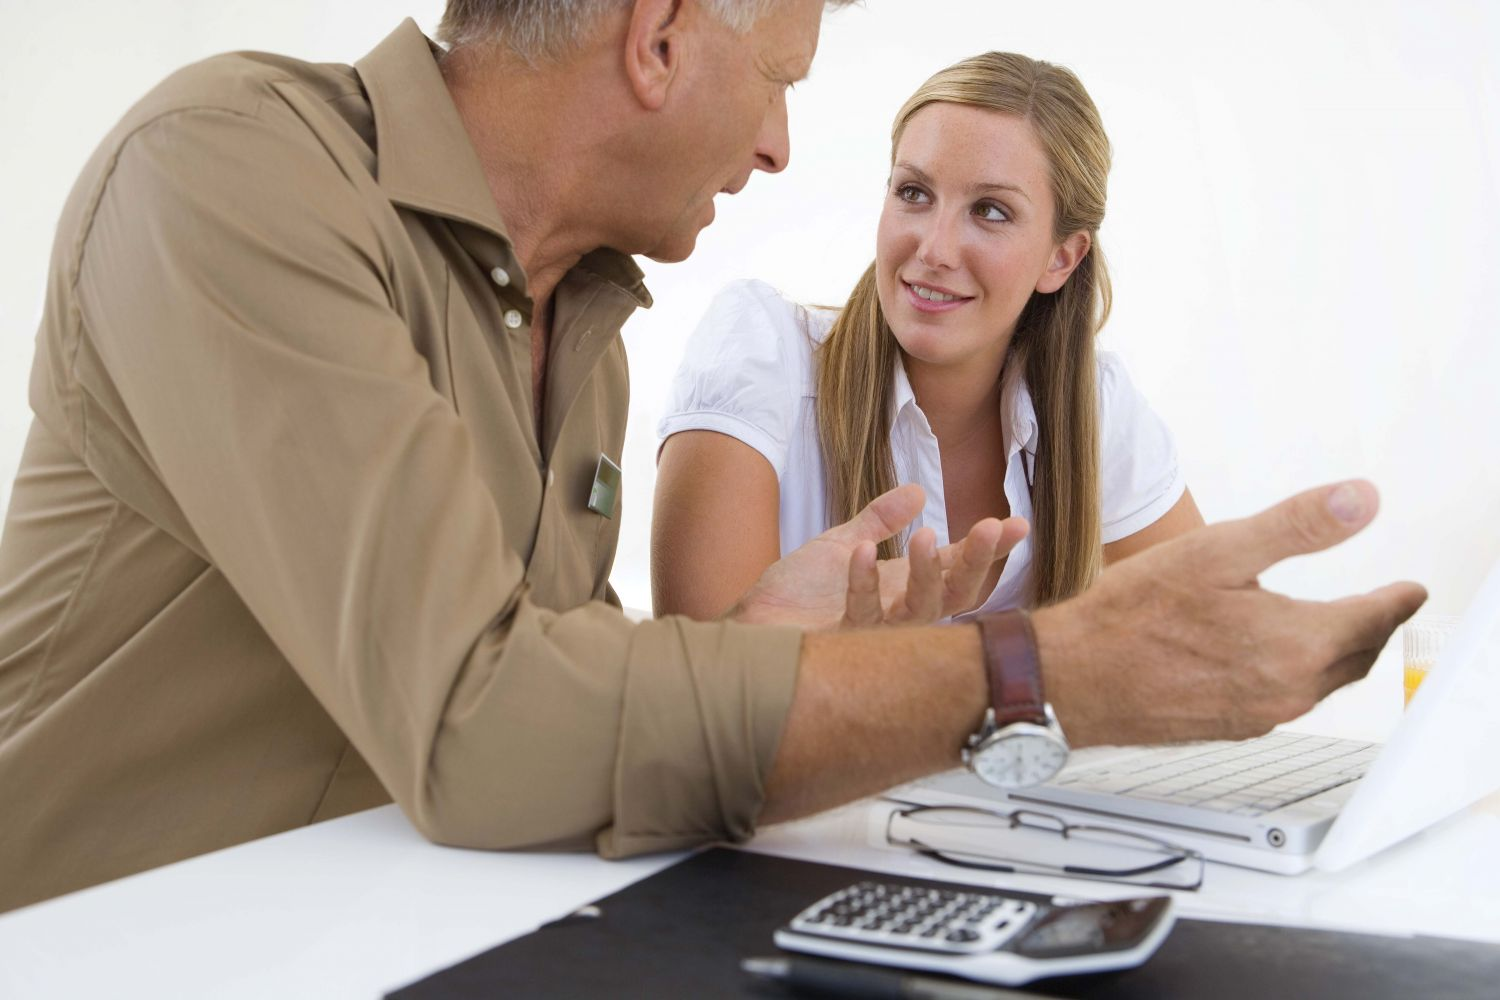 Man helping woman with accountancy services in Archdale, NC